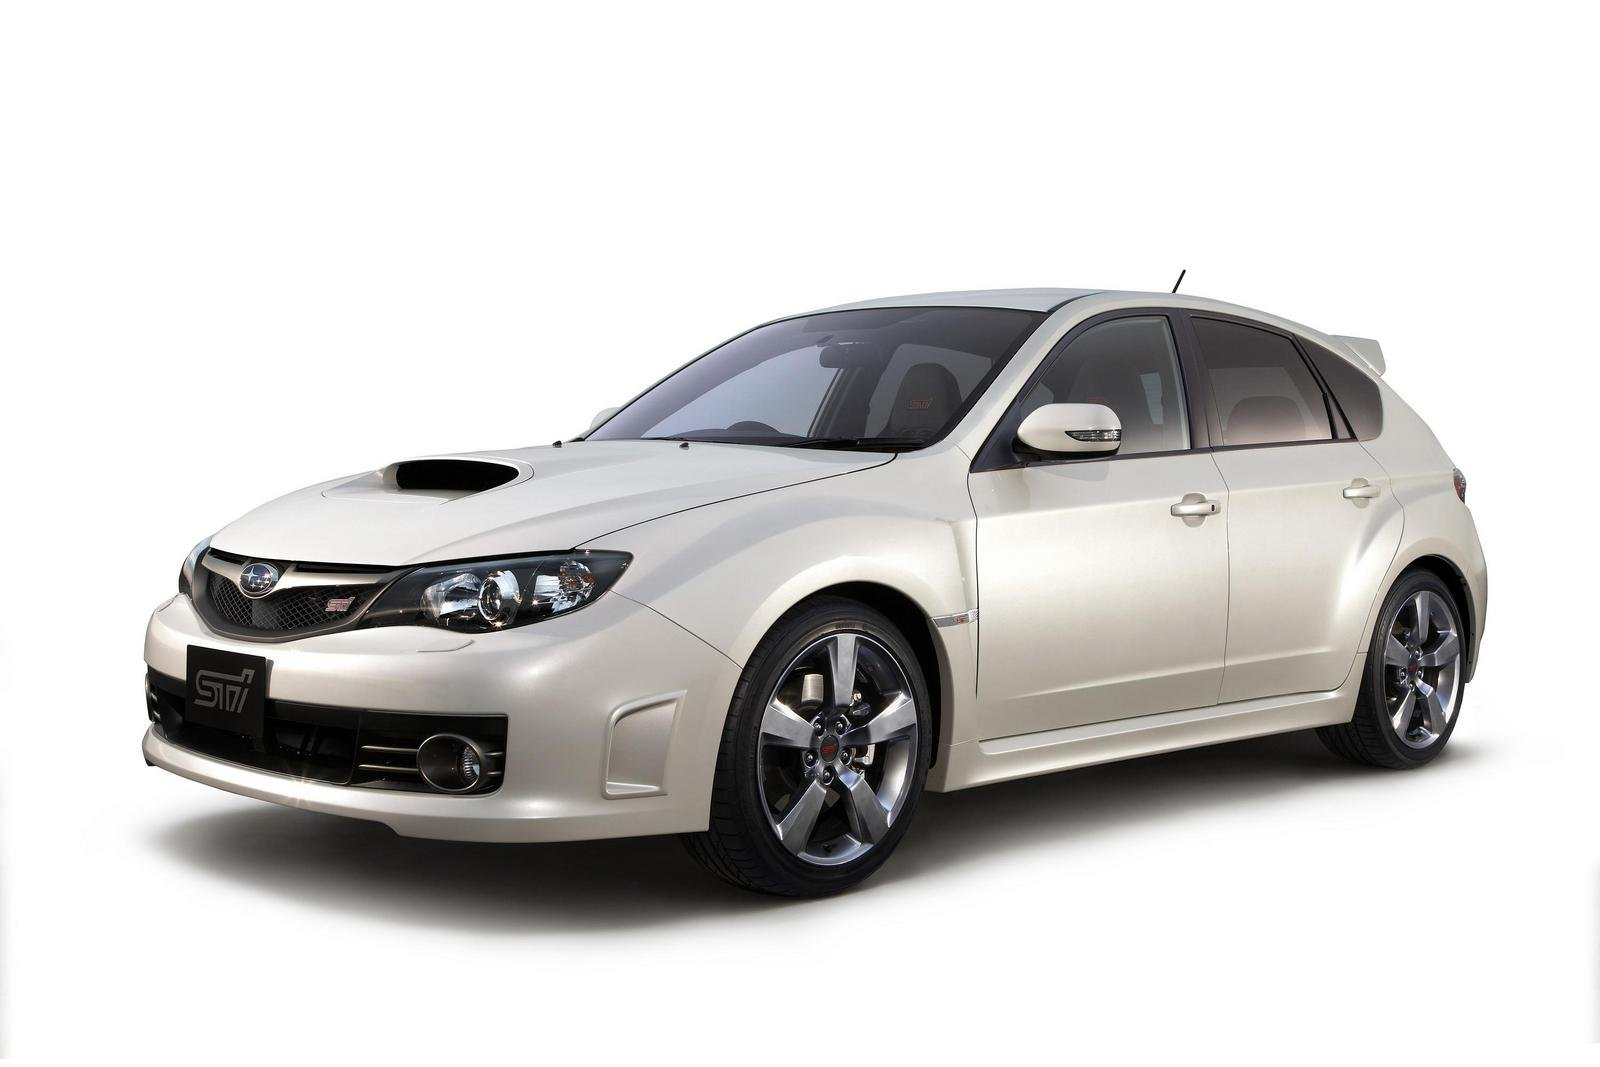 2009 subaru impreza wrx sti a line review top speed. Black Bedroom Furniture Sets. Home Design Ideas